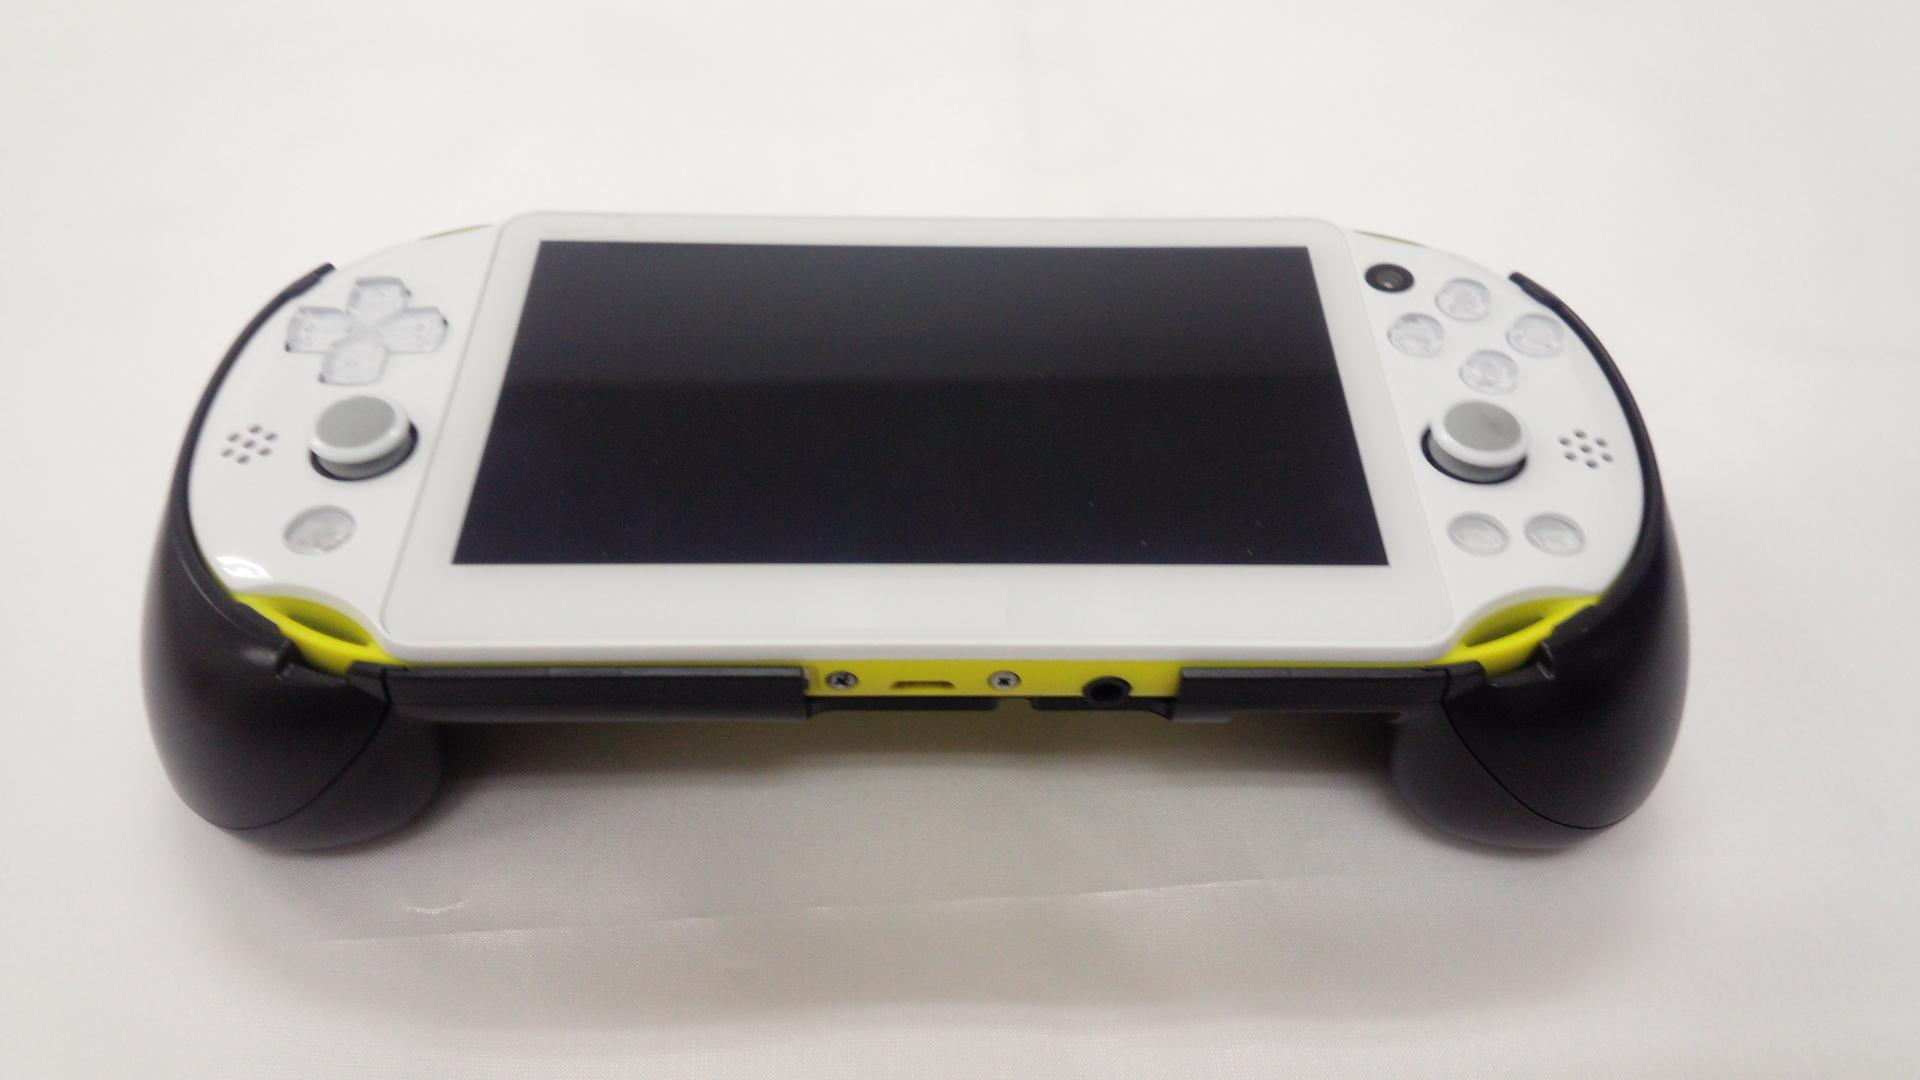 Much Needed PS Vita Accessory Adding L2/R2 Triggers for PS4